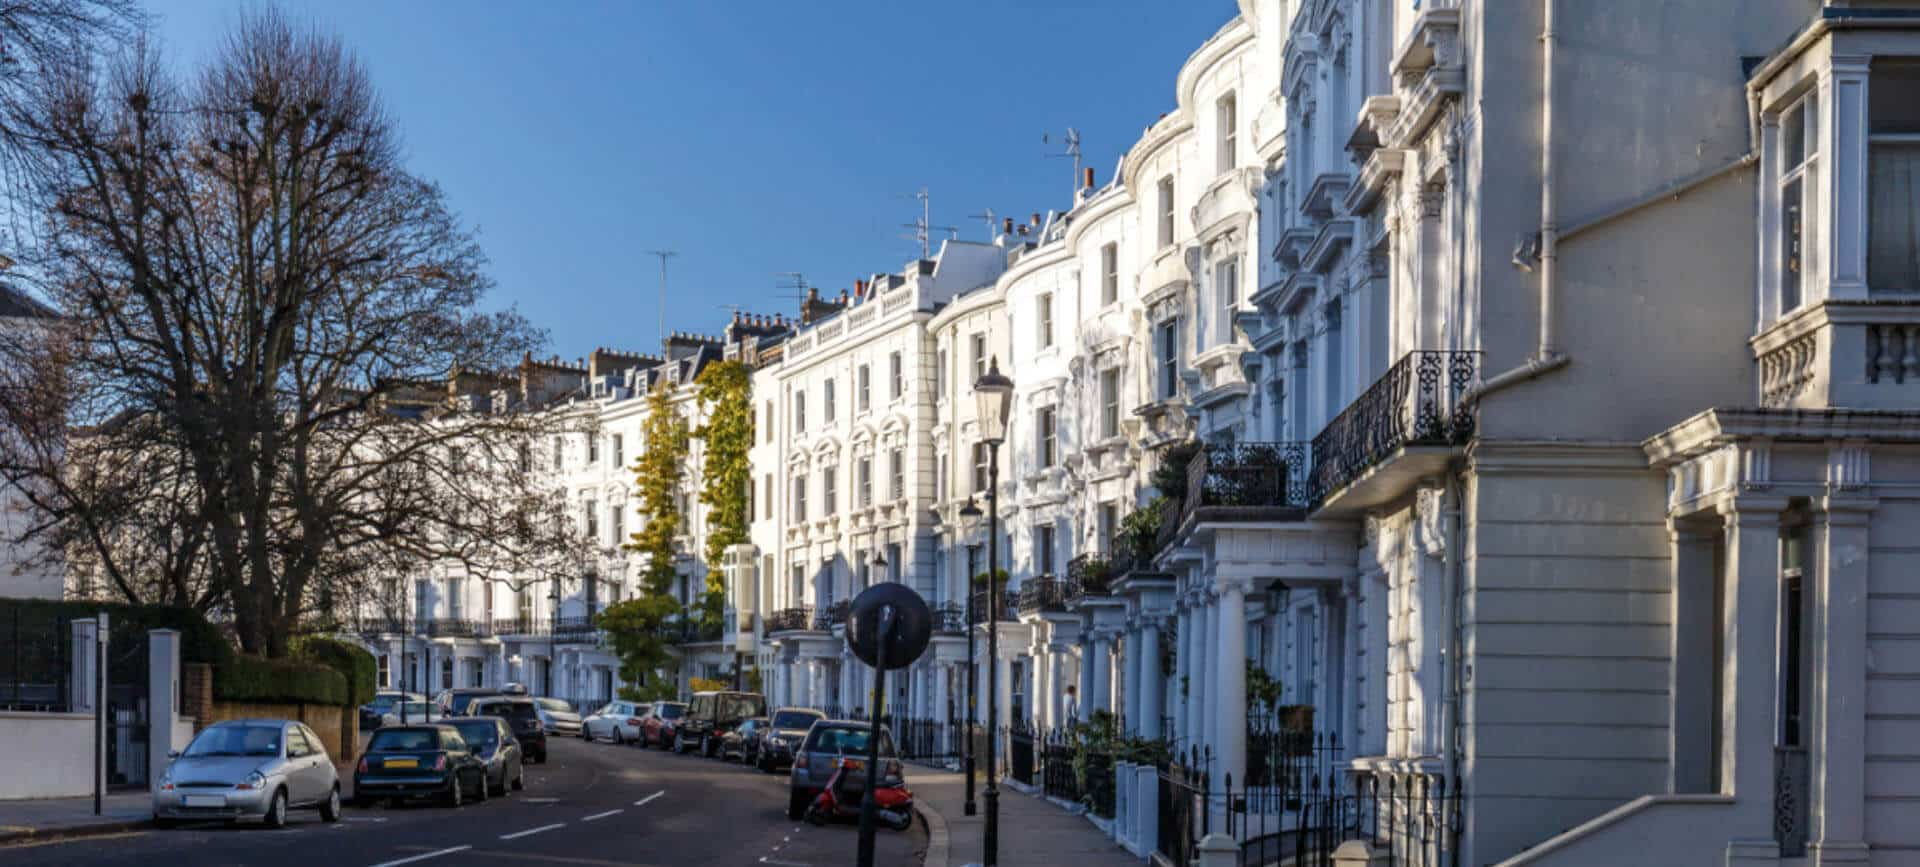 Property in London's Mayfair